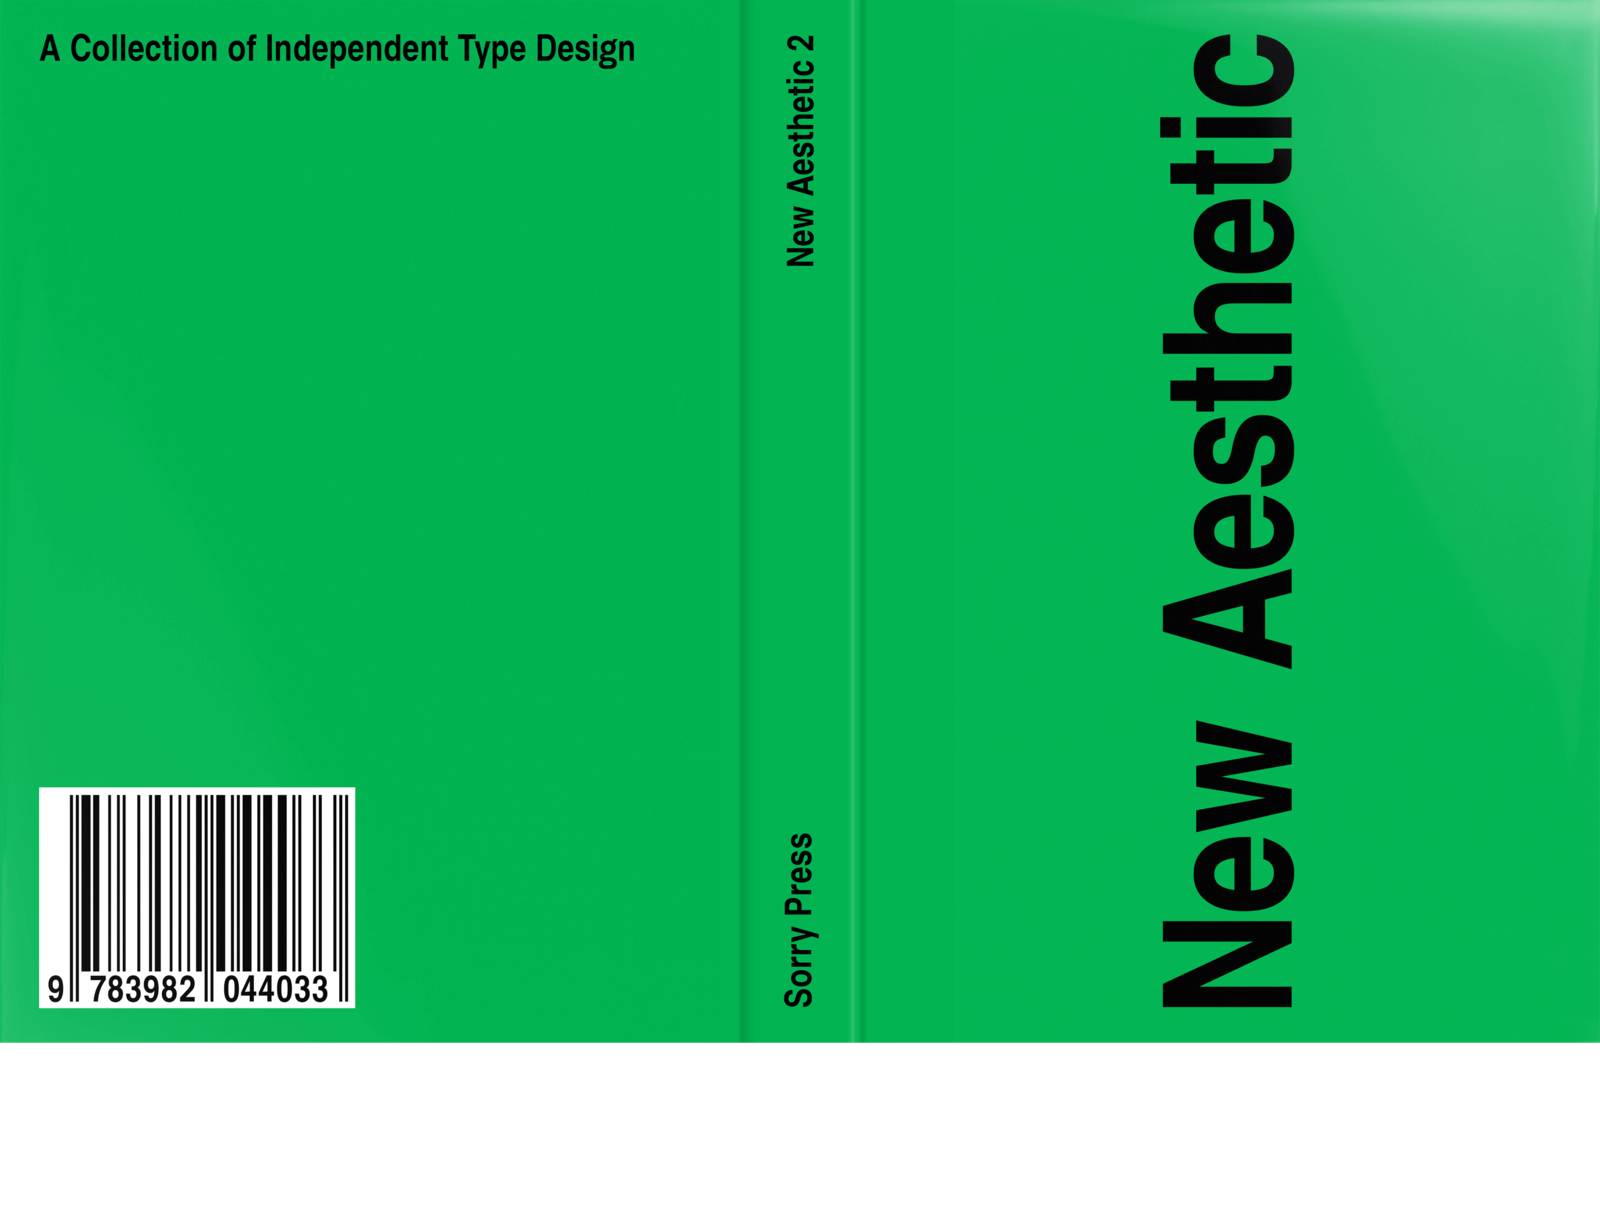 New Aesthetic 2: A Collection of Independent Type Design 6